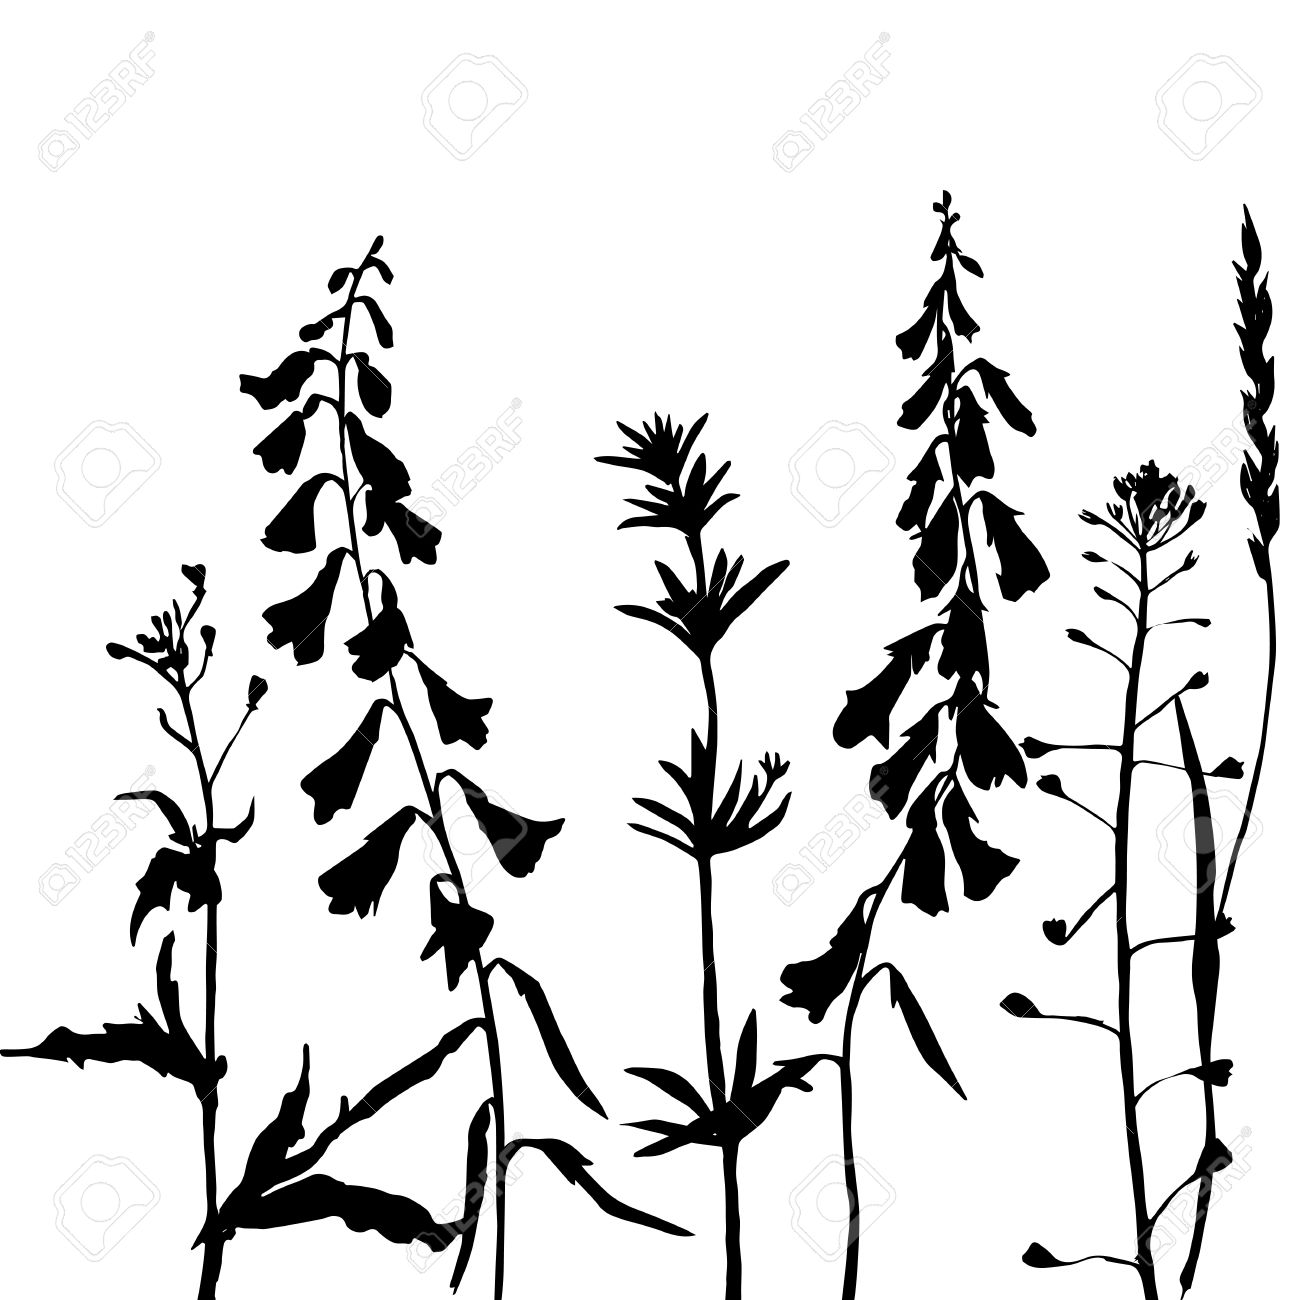 Herb leaf silhouette clipart.